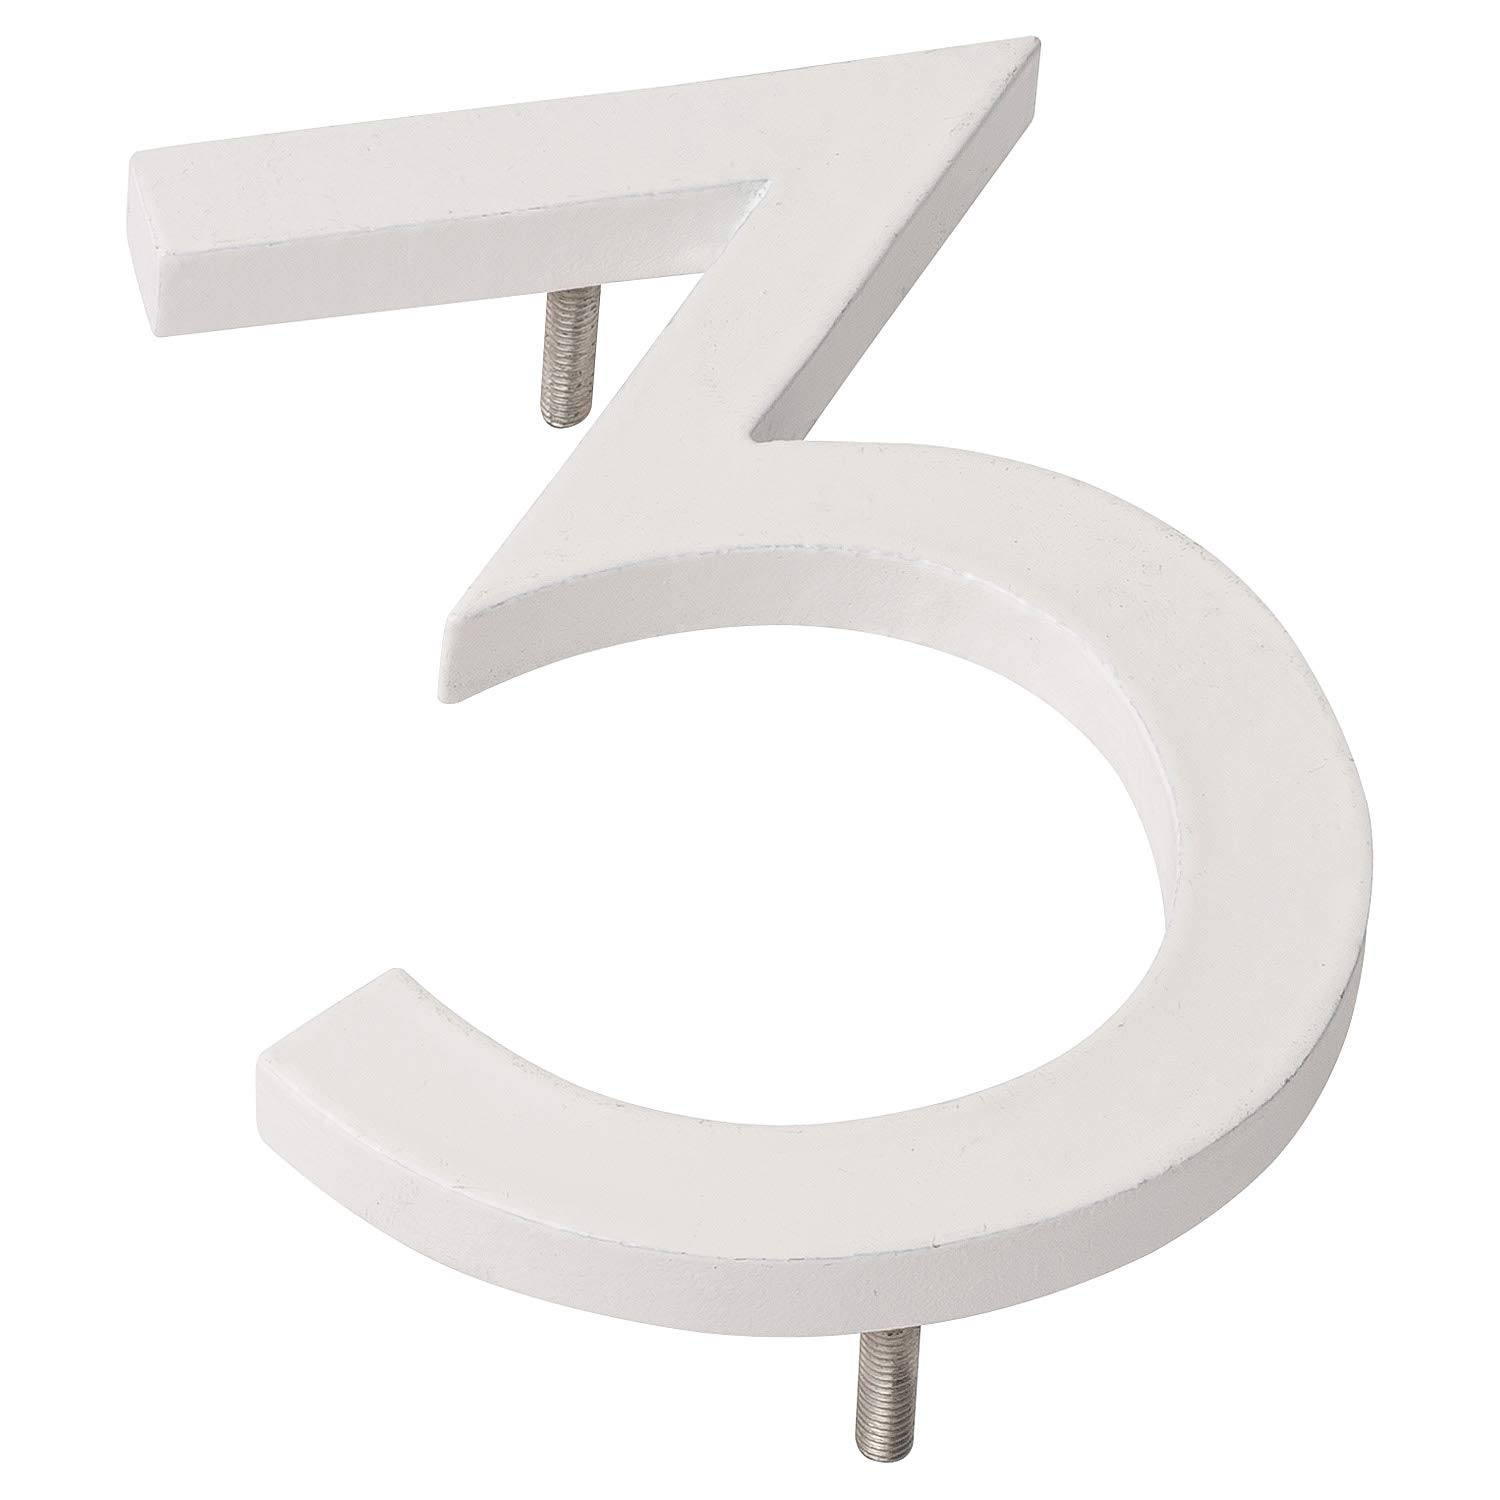 Montague Metal Products MHN-10-3-F-WE1 Floating House Number, 10 inches x 7.75 inches x 0.375 inches, White